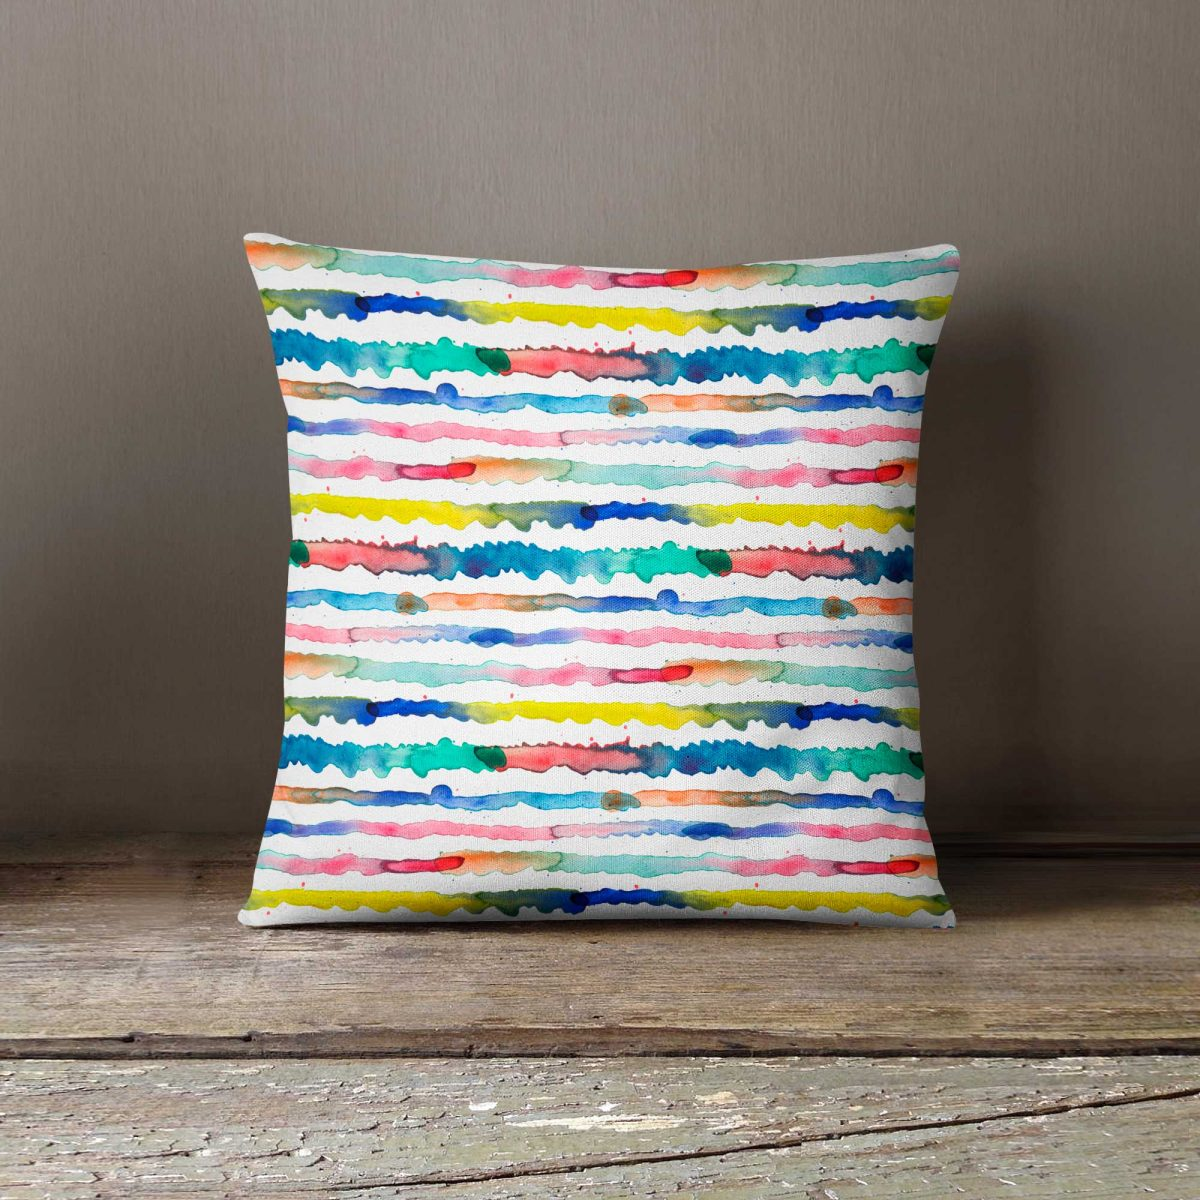 Ninola Design Abstract Watercolour Gradient Lines Cushion